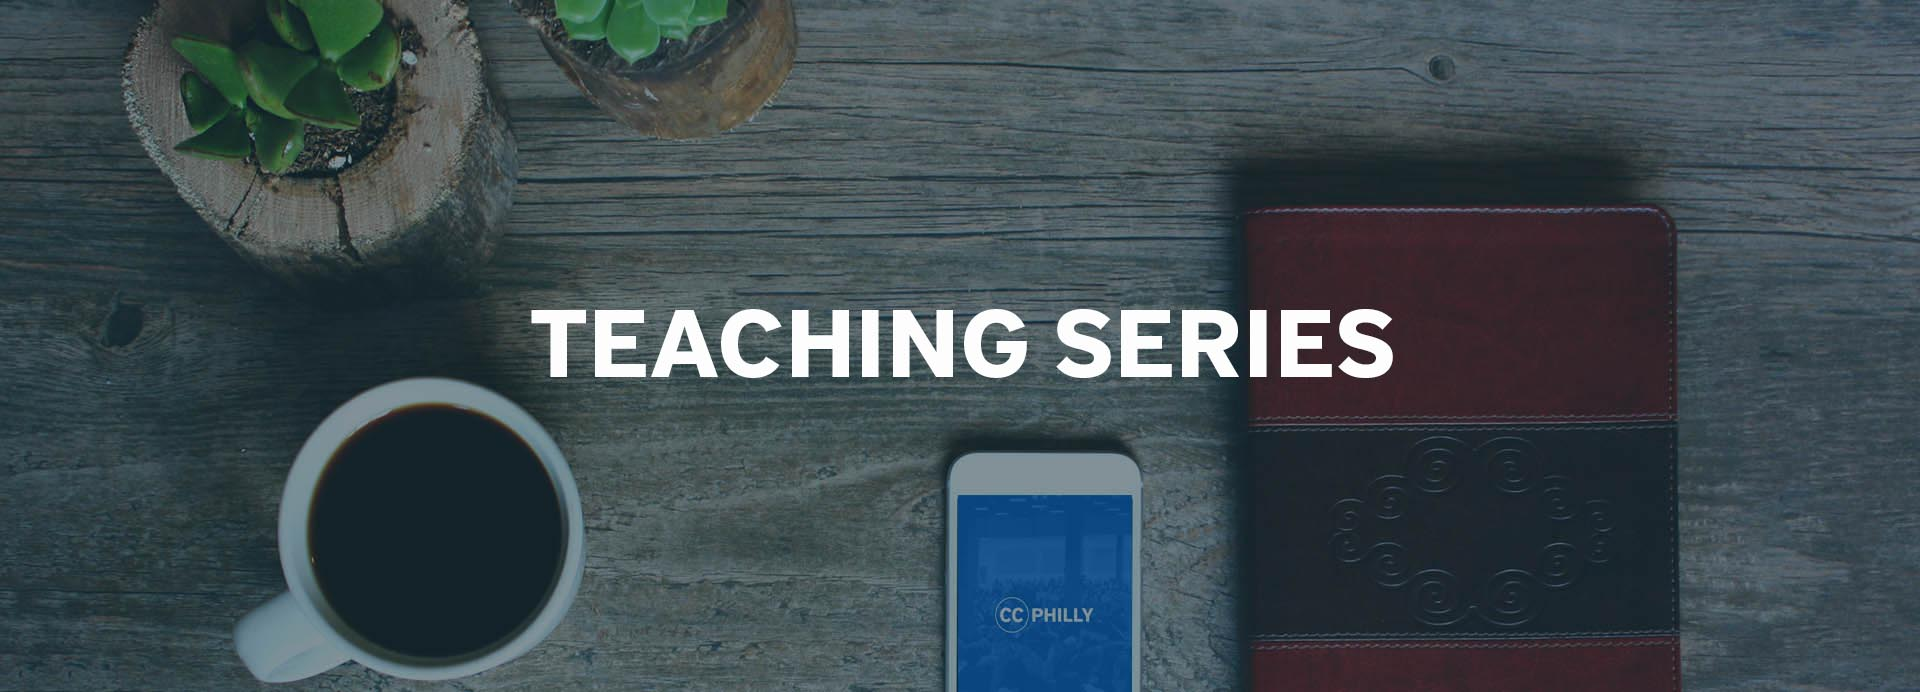 Teaching Series